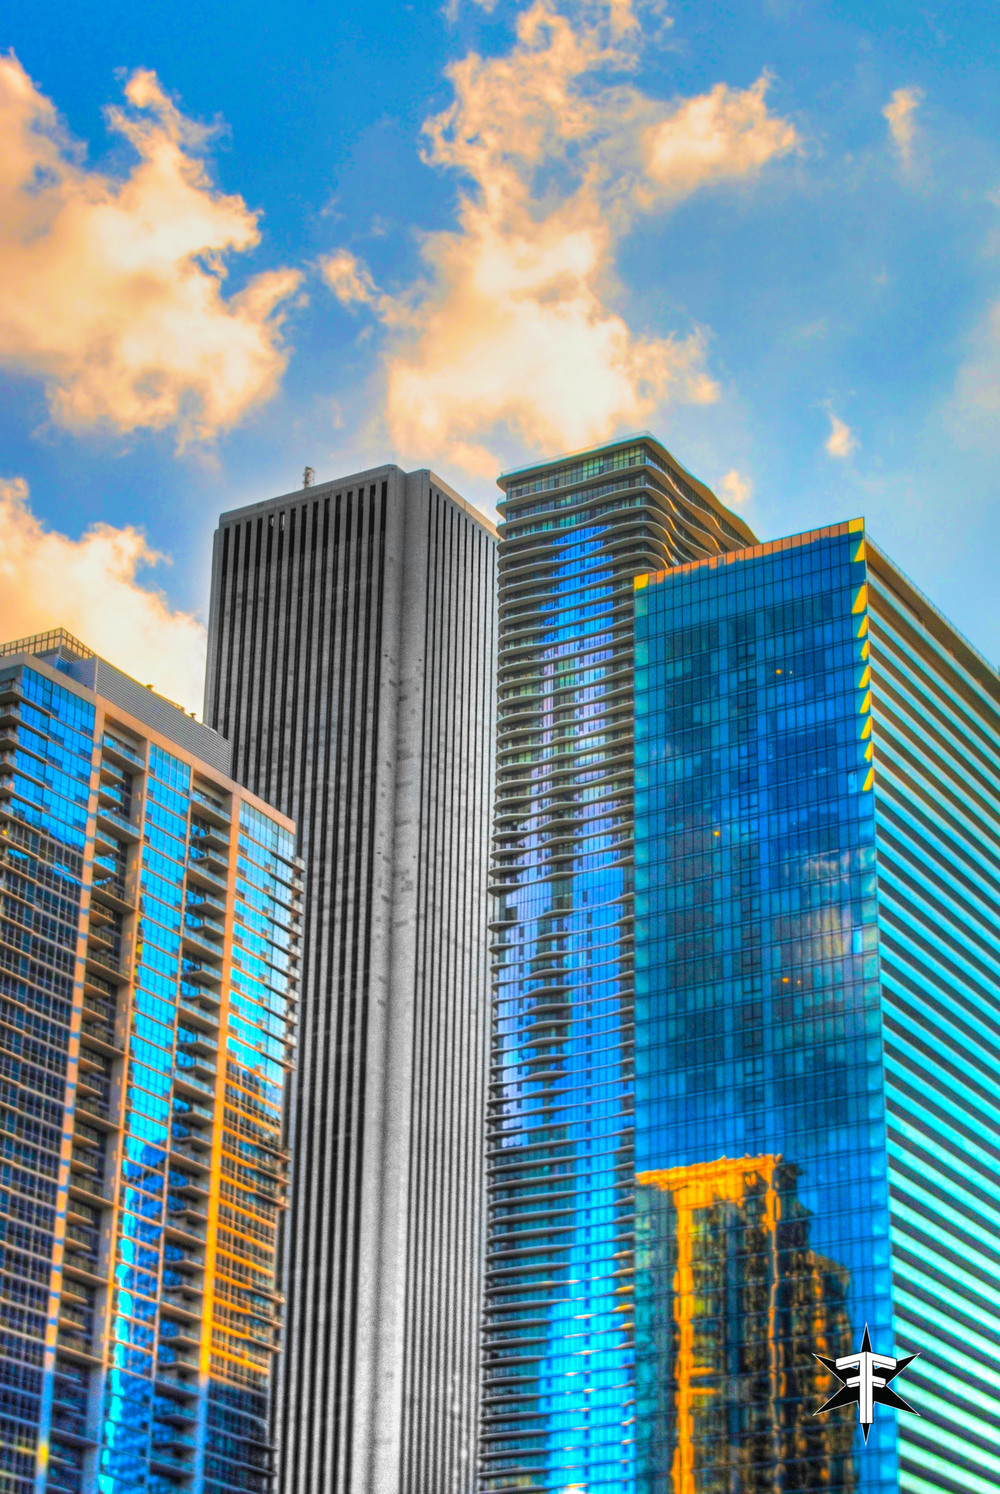 chicago architecture eric formato photography design arquitectura architettura buildings skyscraper skyscrapers-22.jpg